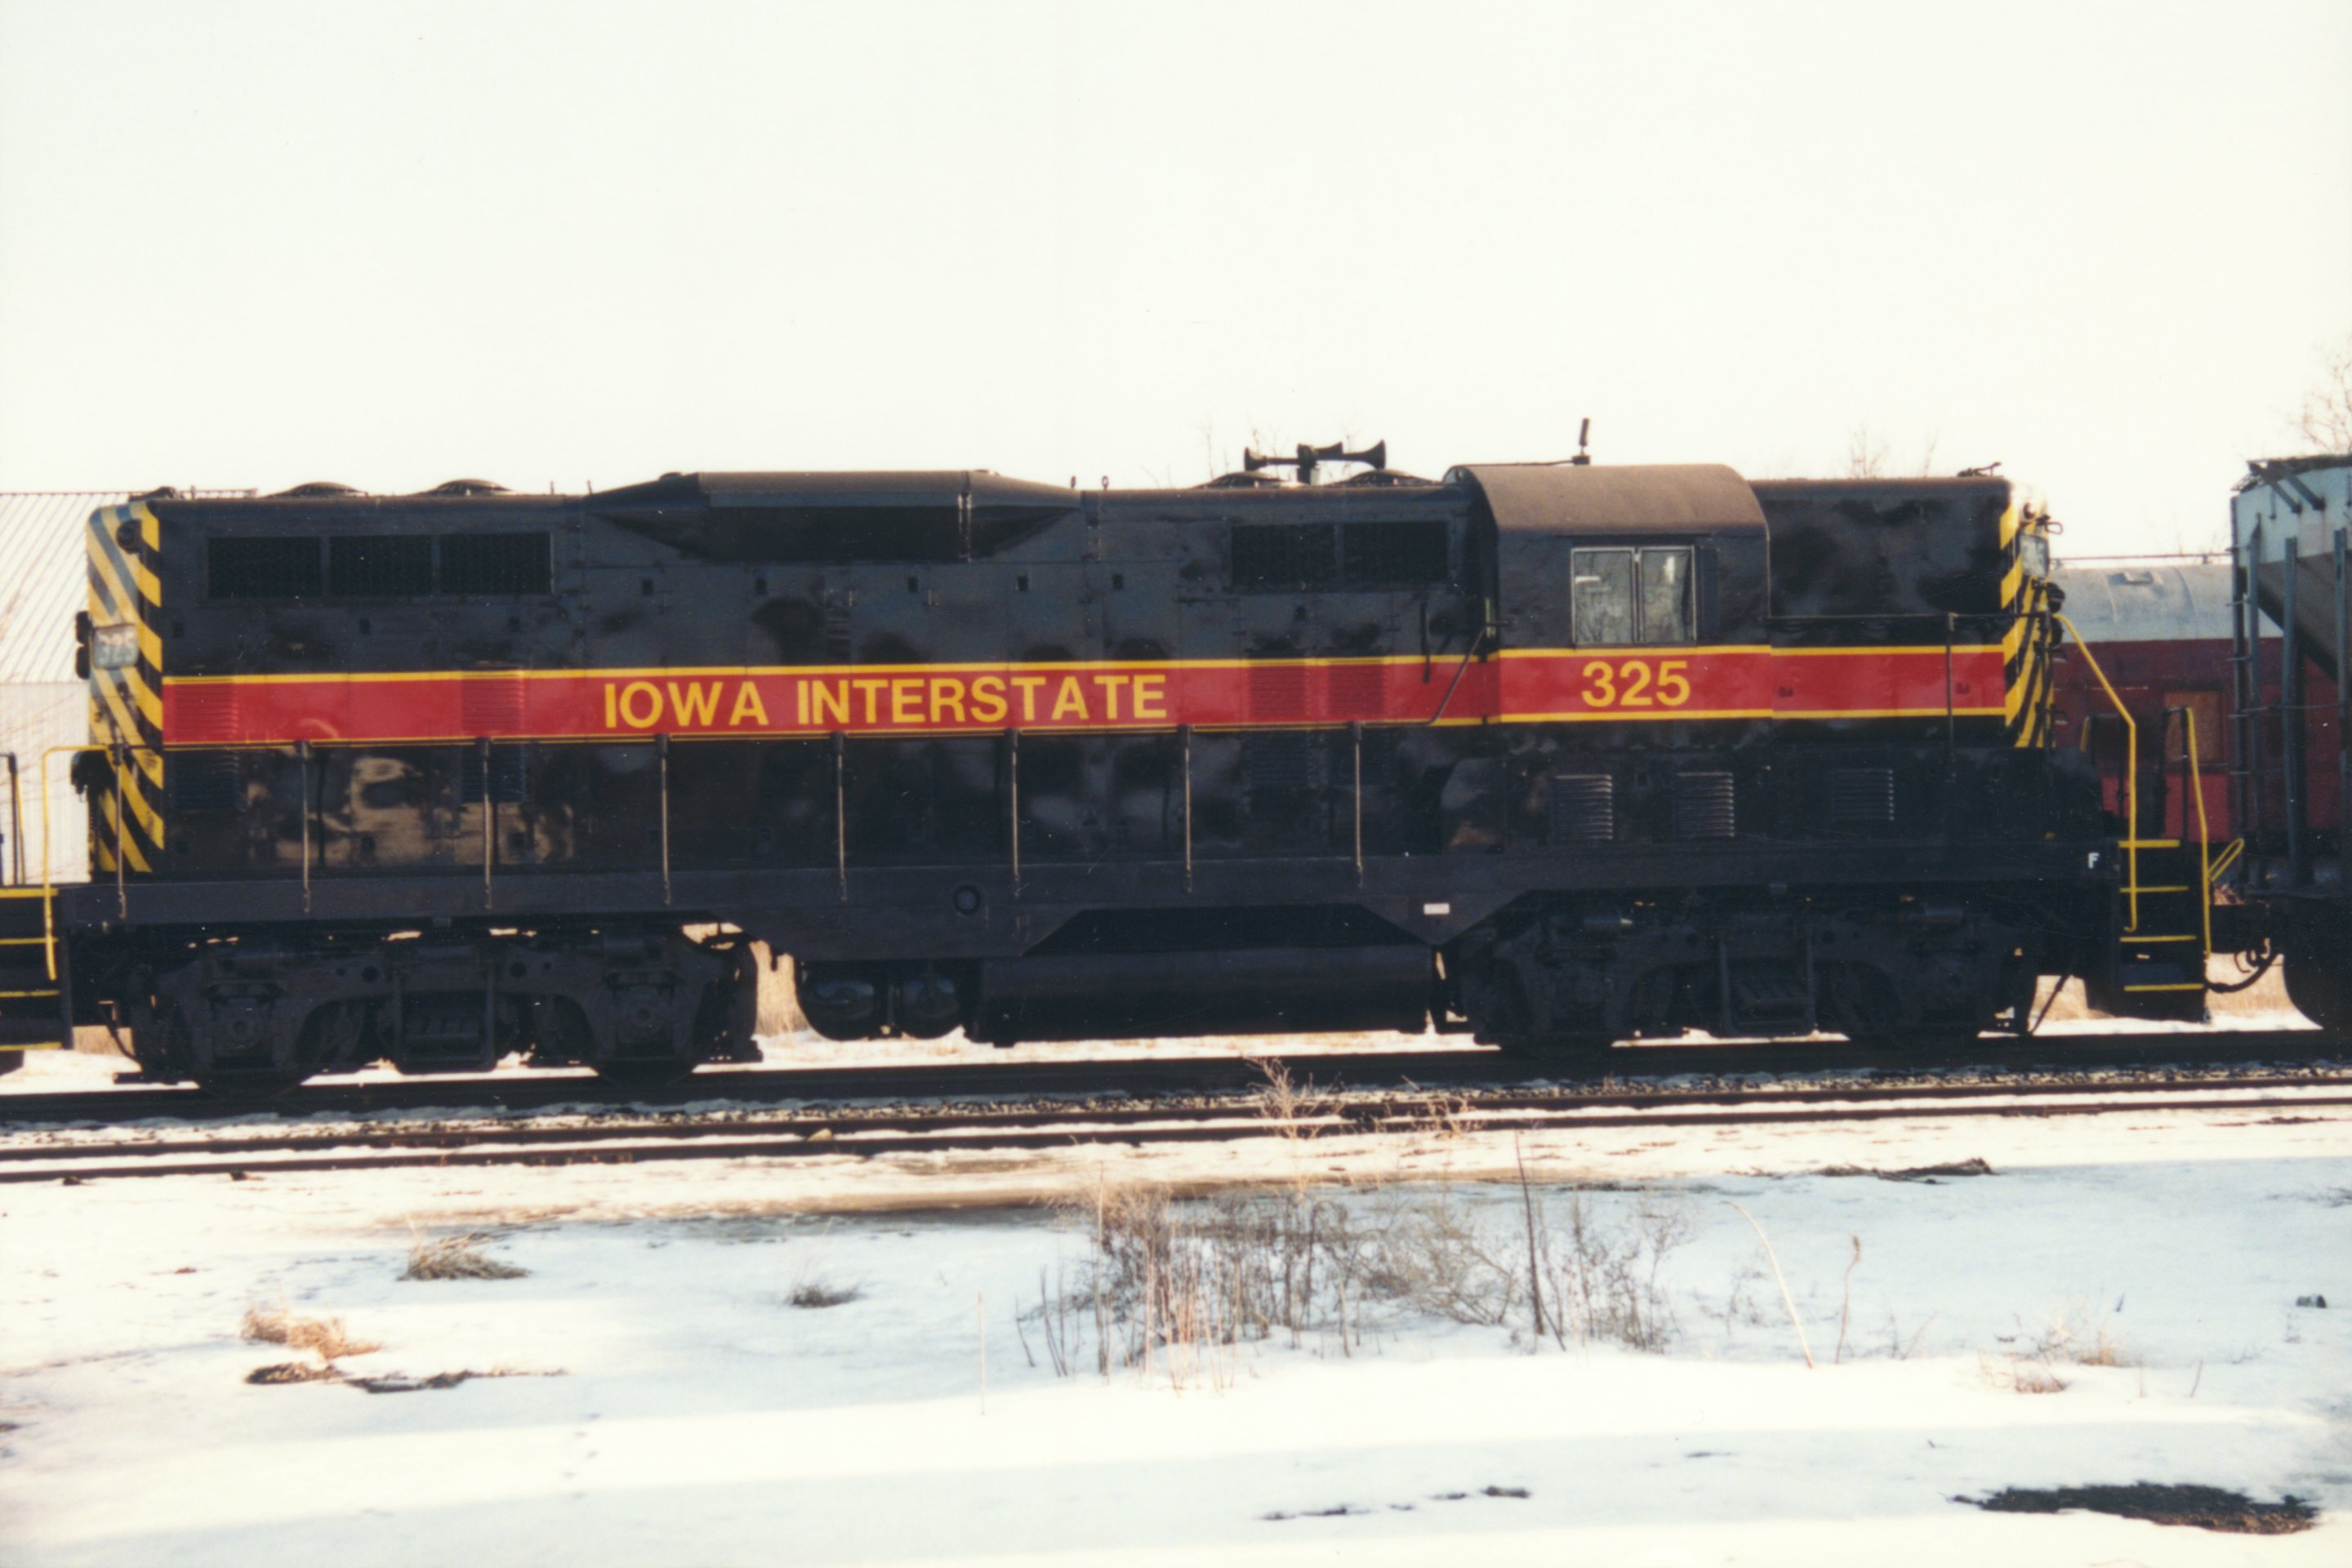 IAIS 325 at Altoona, IA on 15-Feb-1994